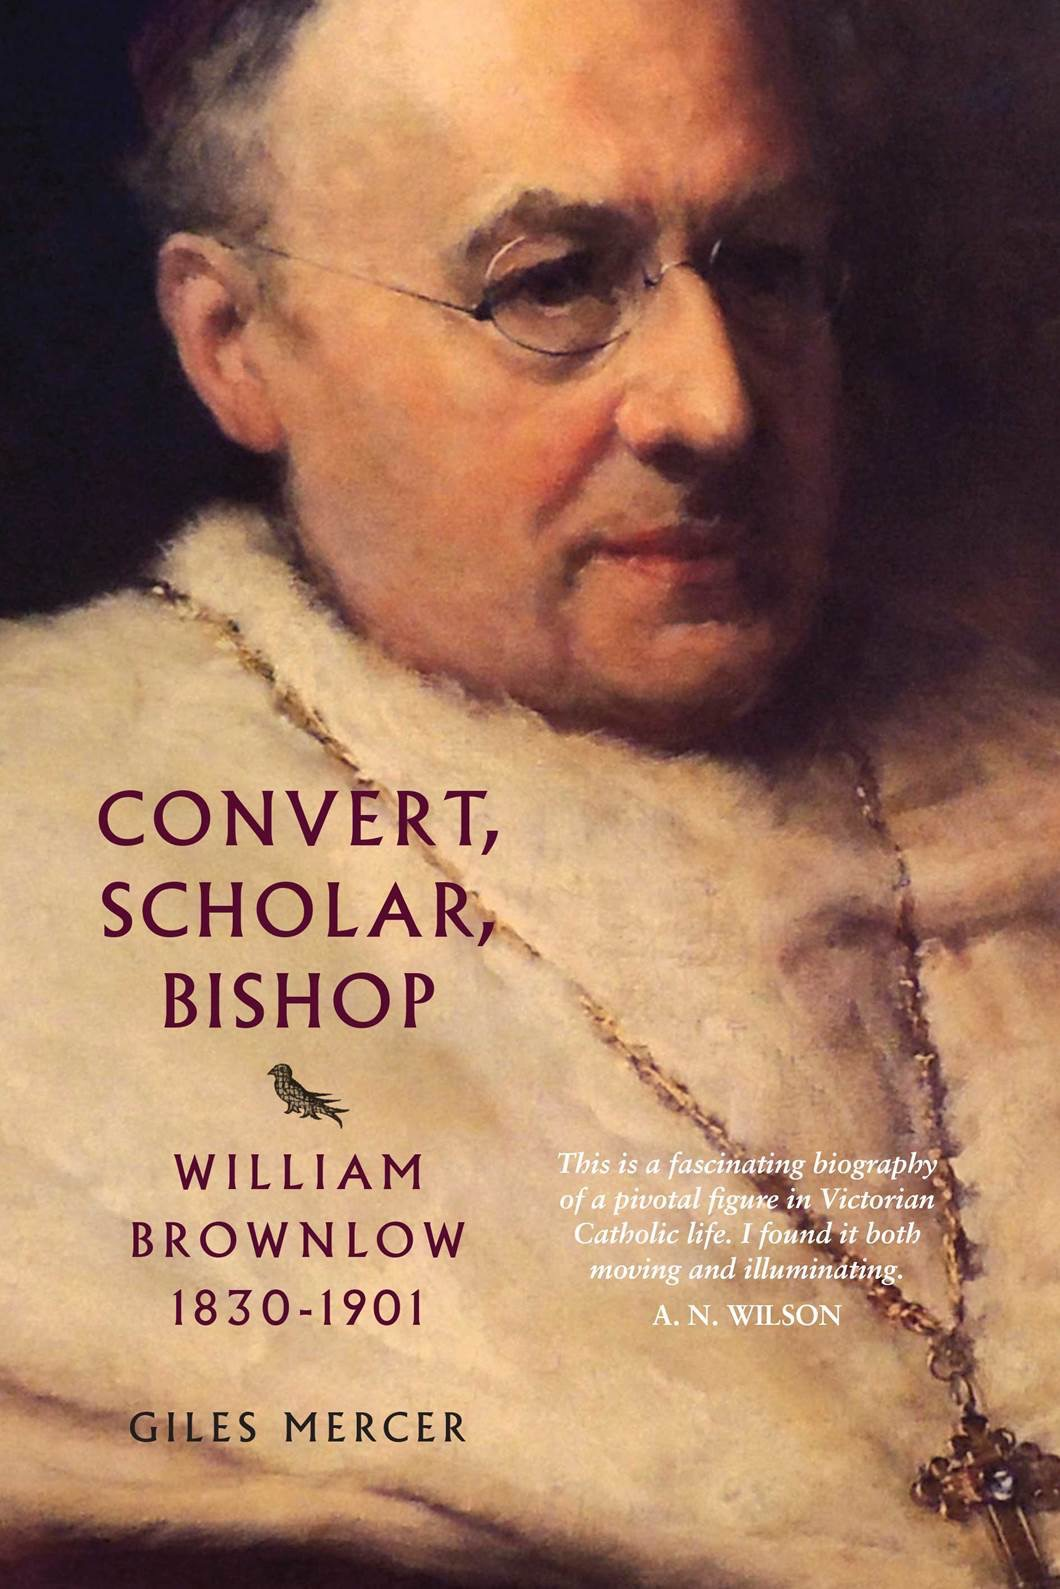 Convert, Scholar, Bishop book by Giles Mercer